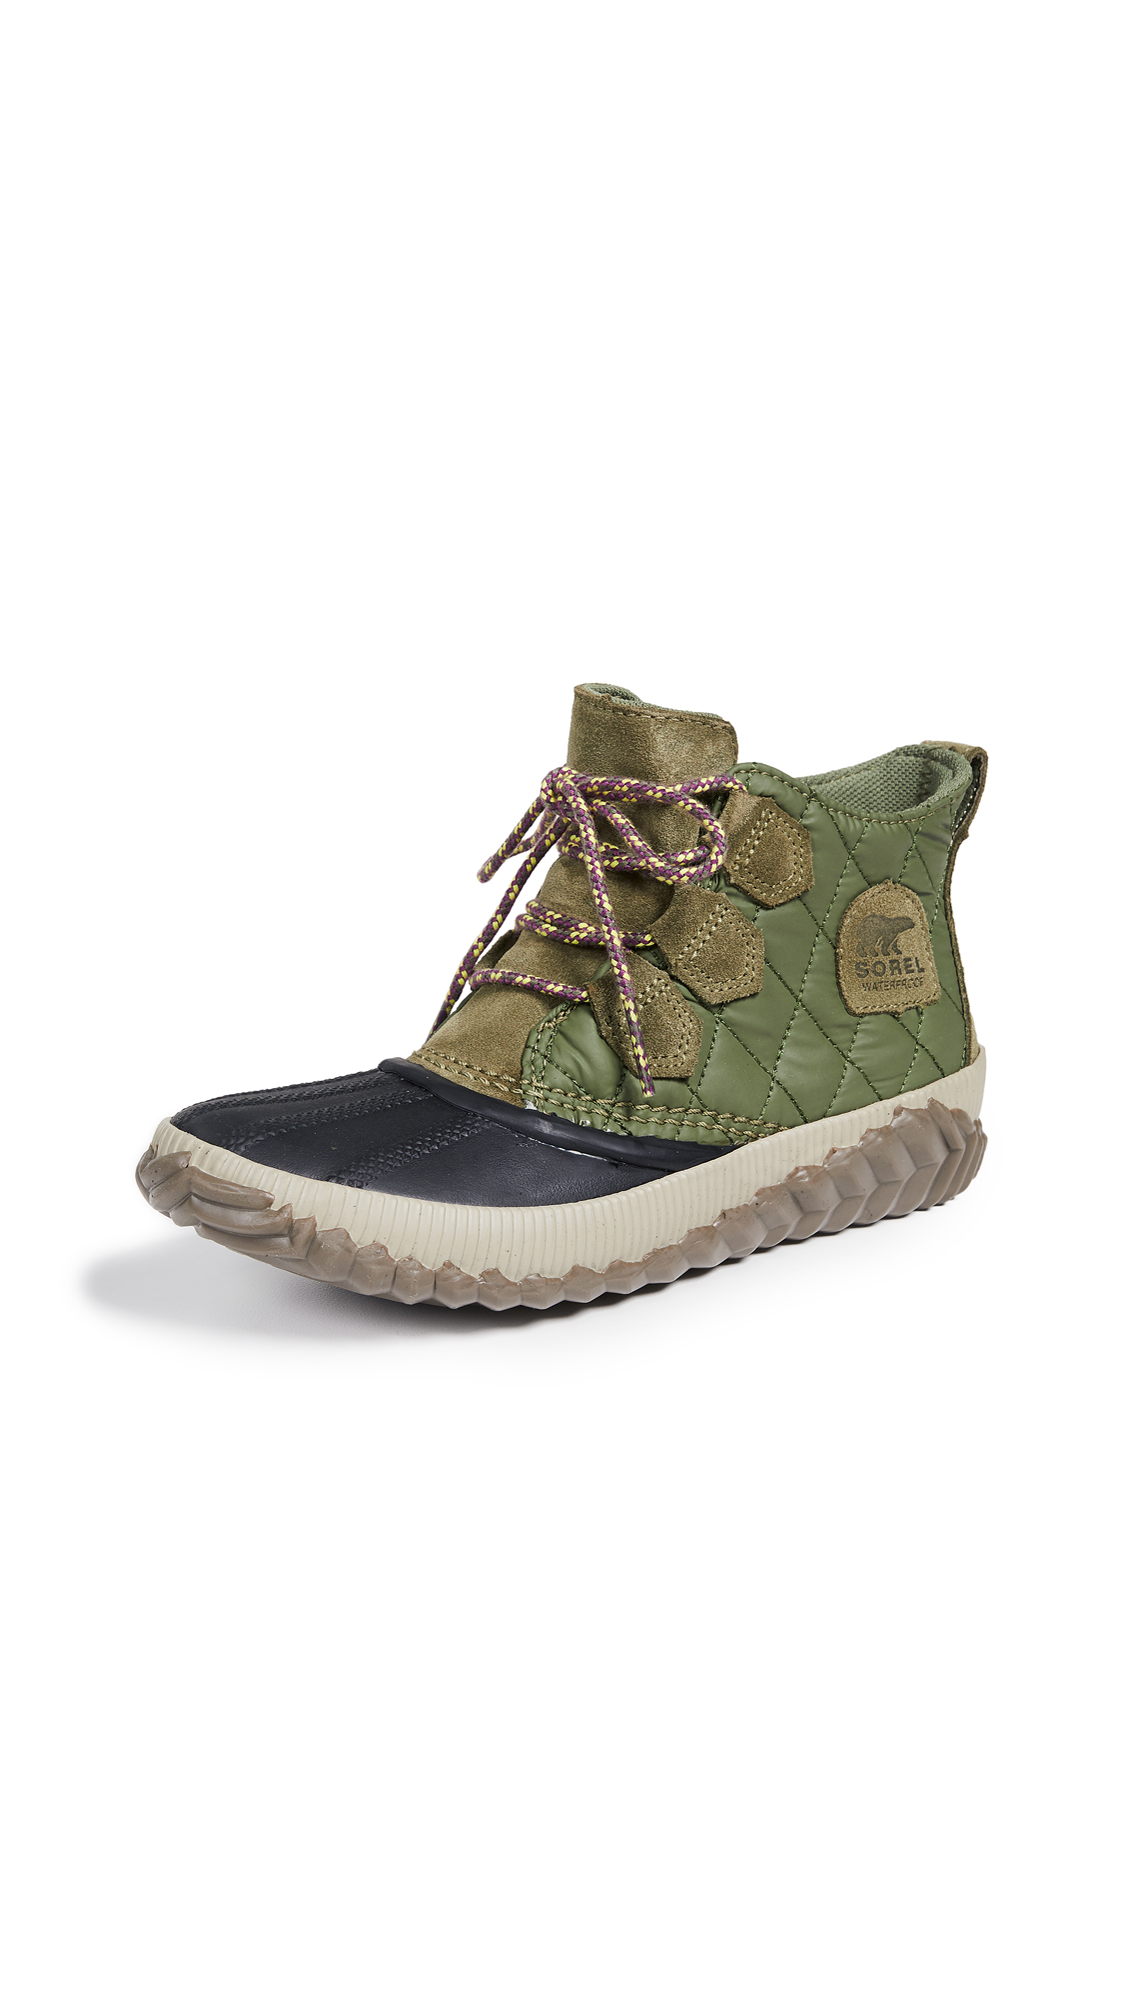 Sorel Out n About Plus Boots - Hiker Green